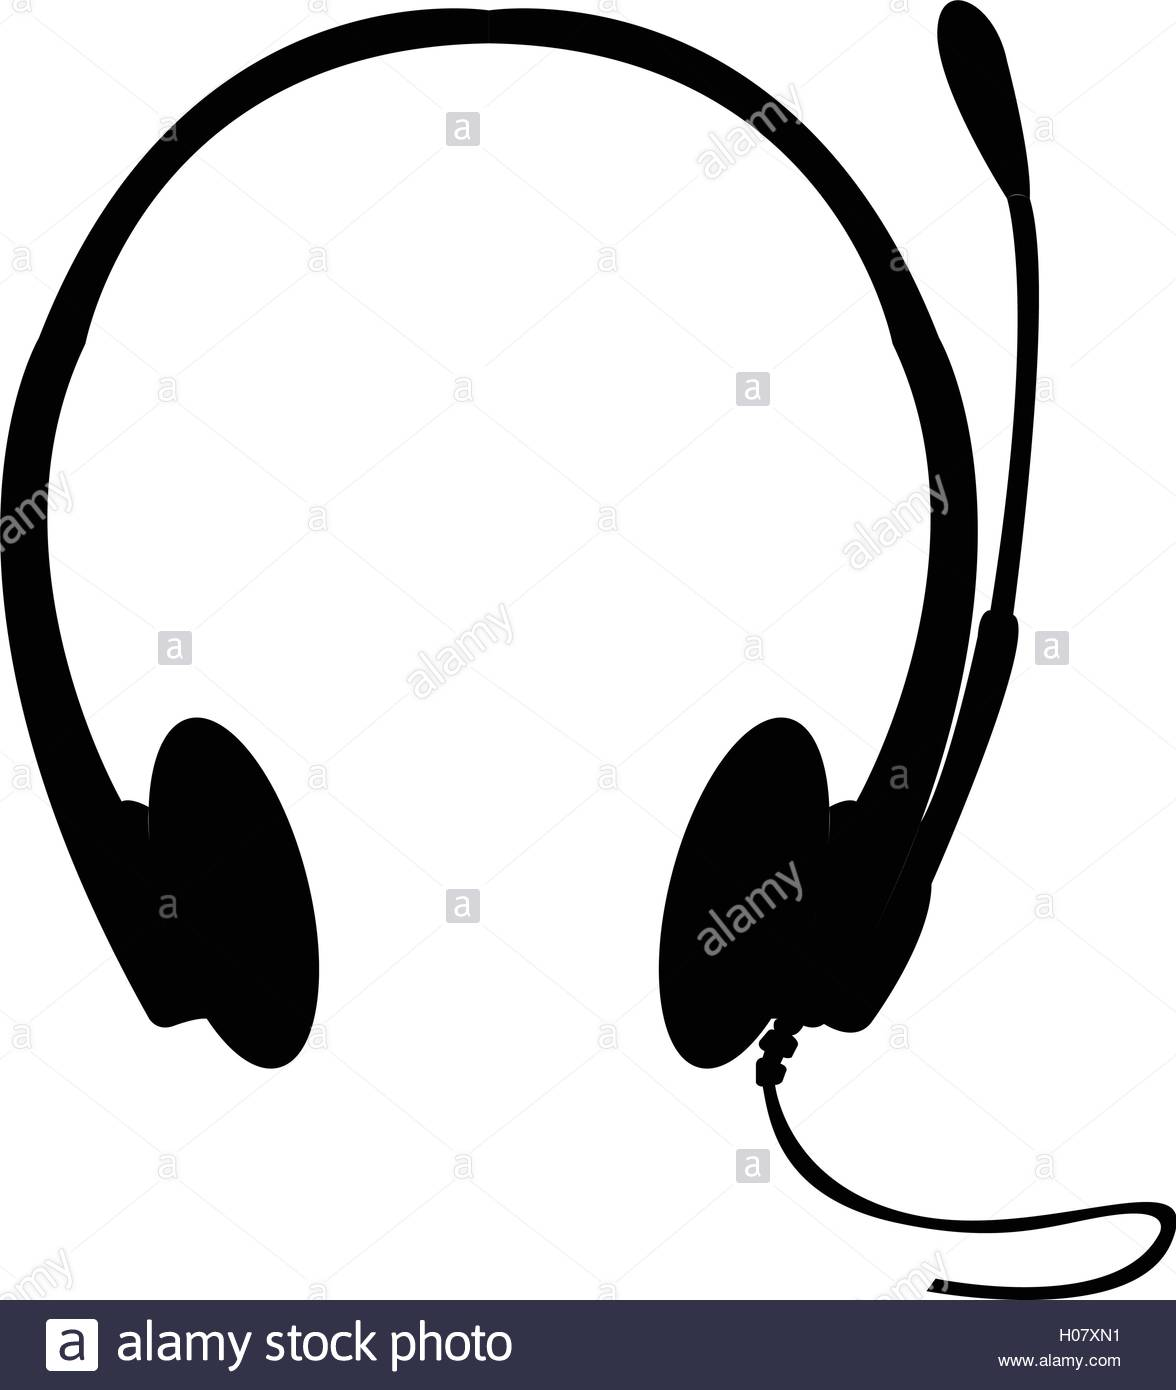 1176x1390 Isolated Silhouette Of A Headphones, Vector Illustration Stock